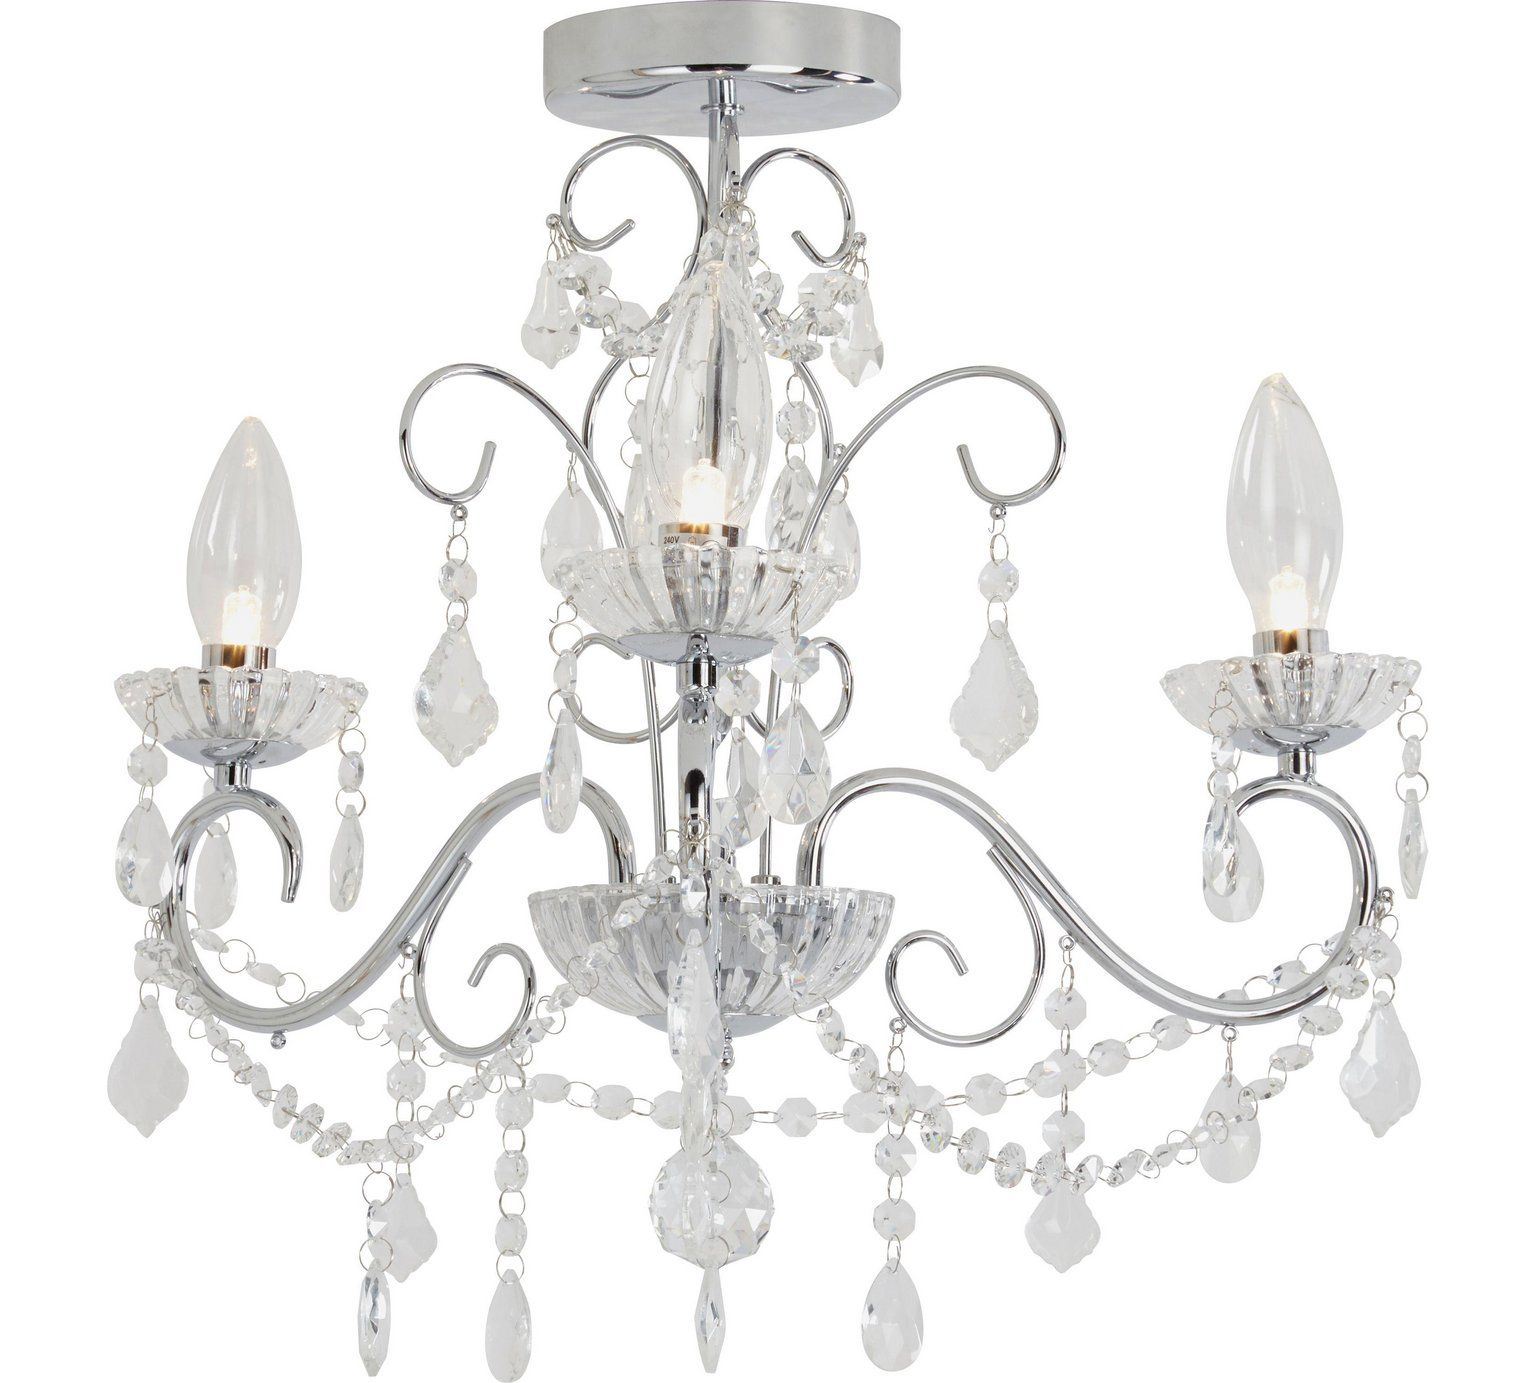 Buy Heart of House Spetses 3 Light Bathroom Chandelier - Chrome at ...